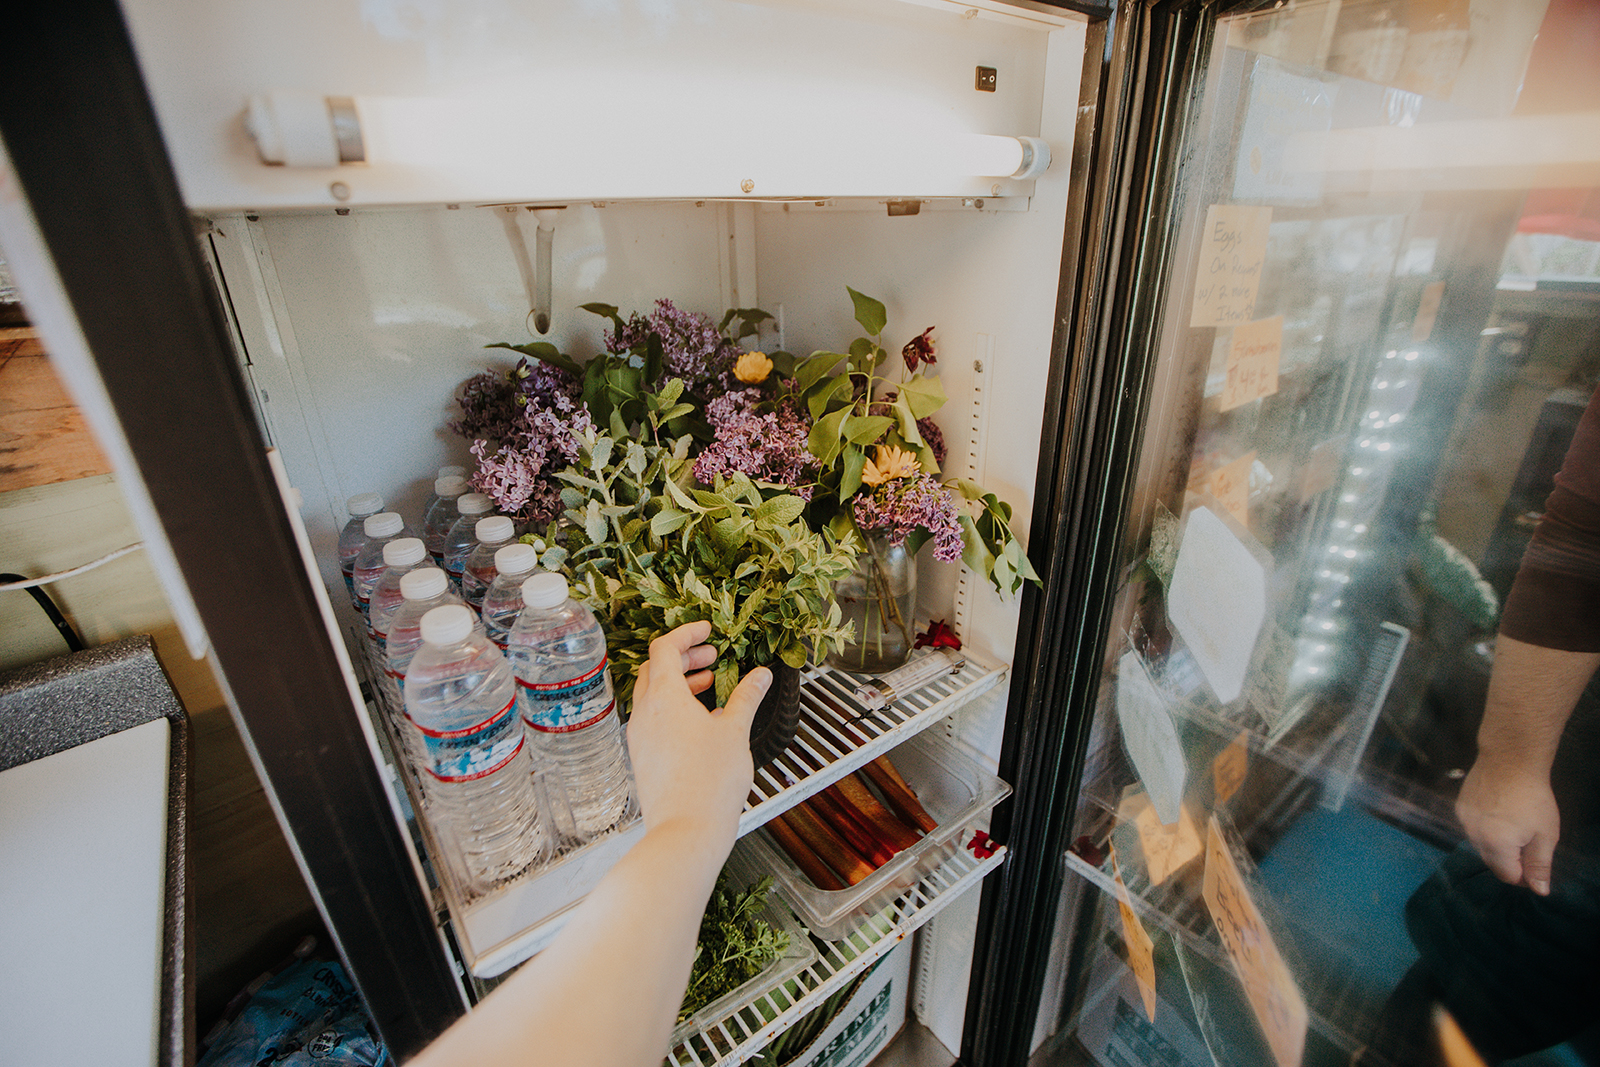 Elise reaches into a refrigerator to grab freshly cut flowers.